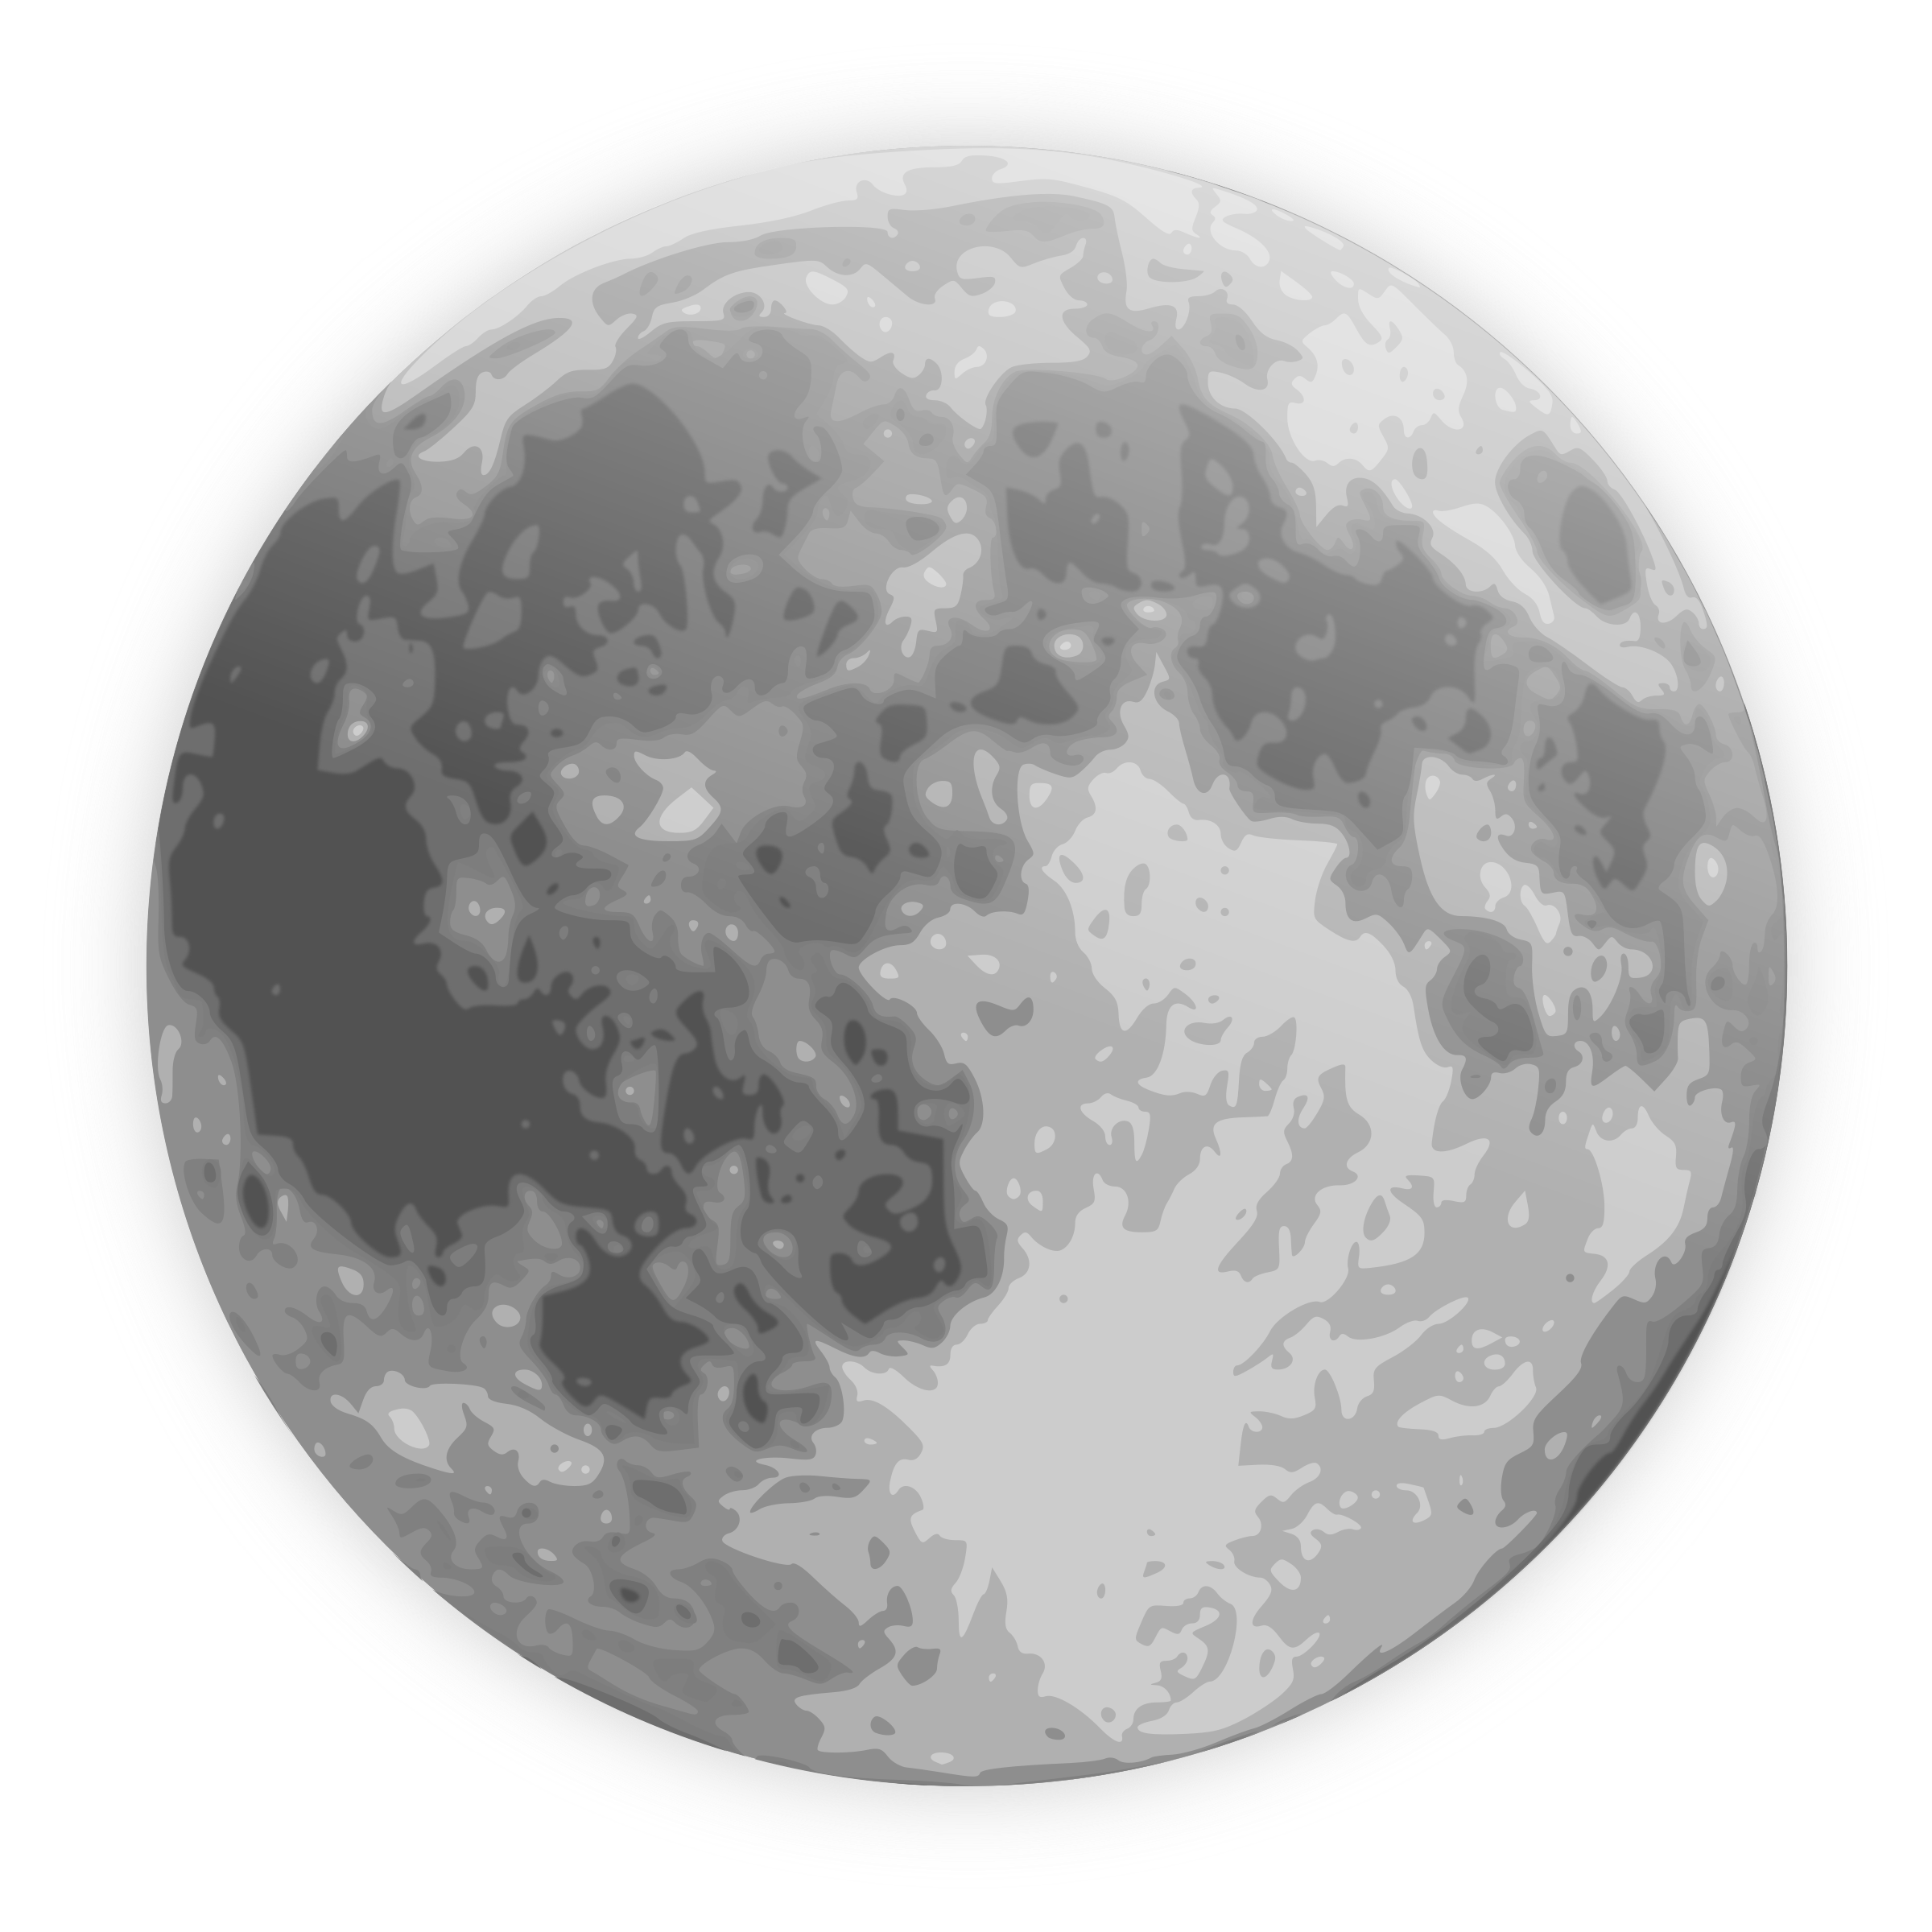 Sun and moon rotate clipart black and white picture free stock Moon Icons - PNG & Vector - Free Icons and PNG Backgrounds picture free stock